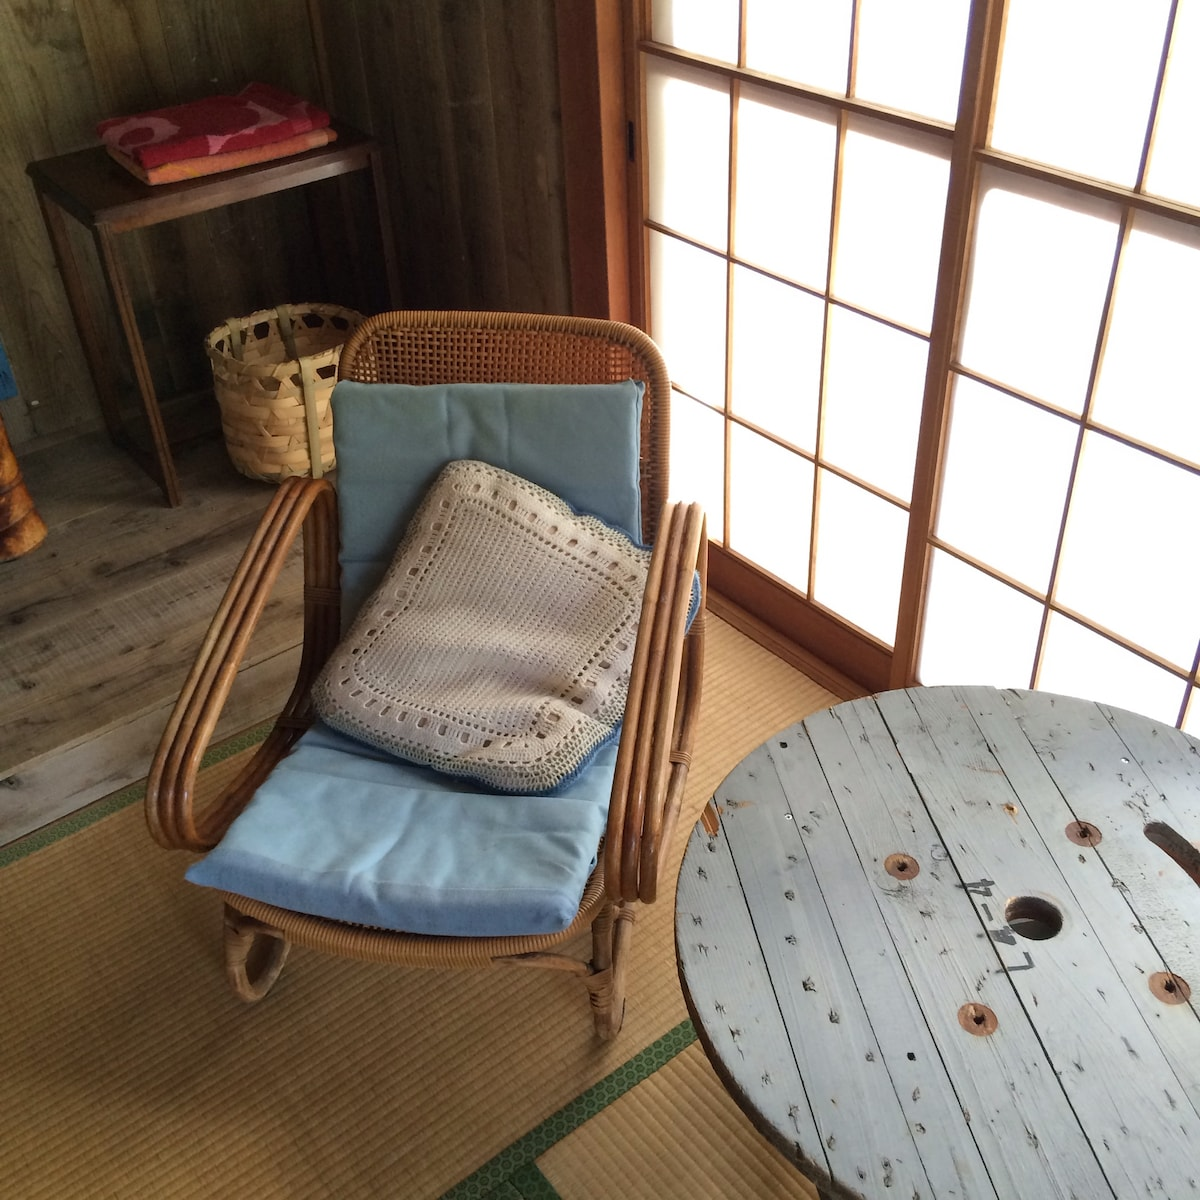 Vintage rayan lounge chairs and DIY table